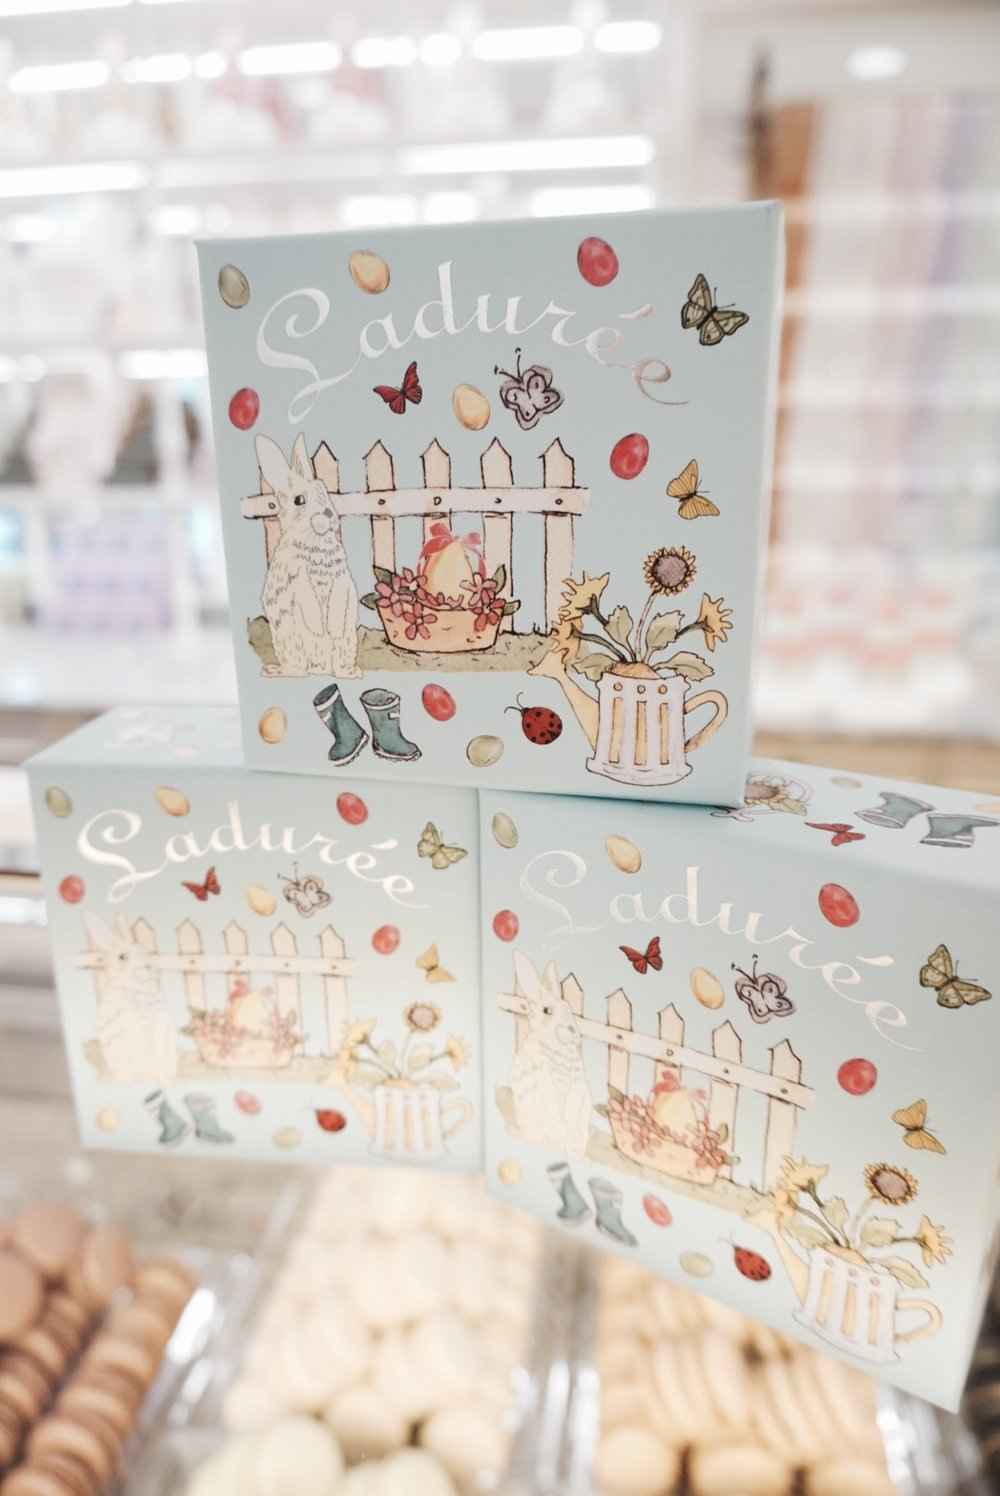 New Easter Boxes for a limited time at Ladurée